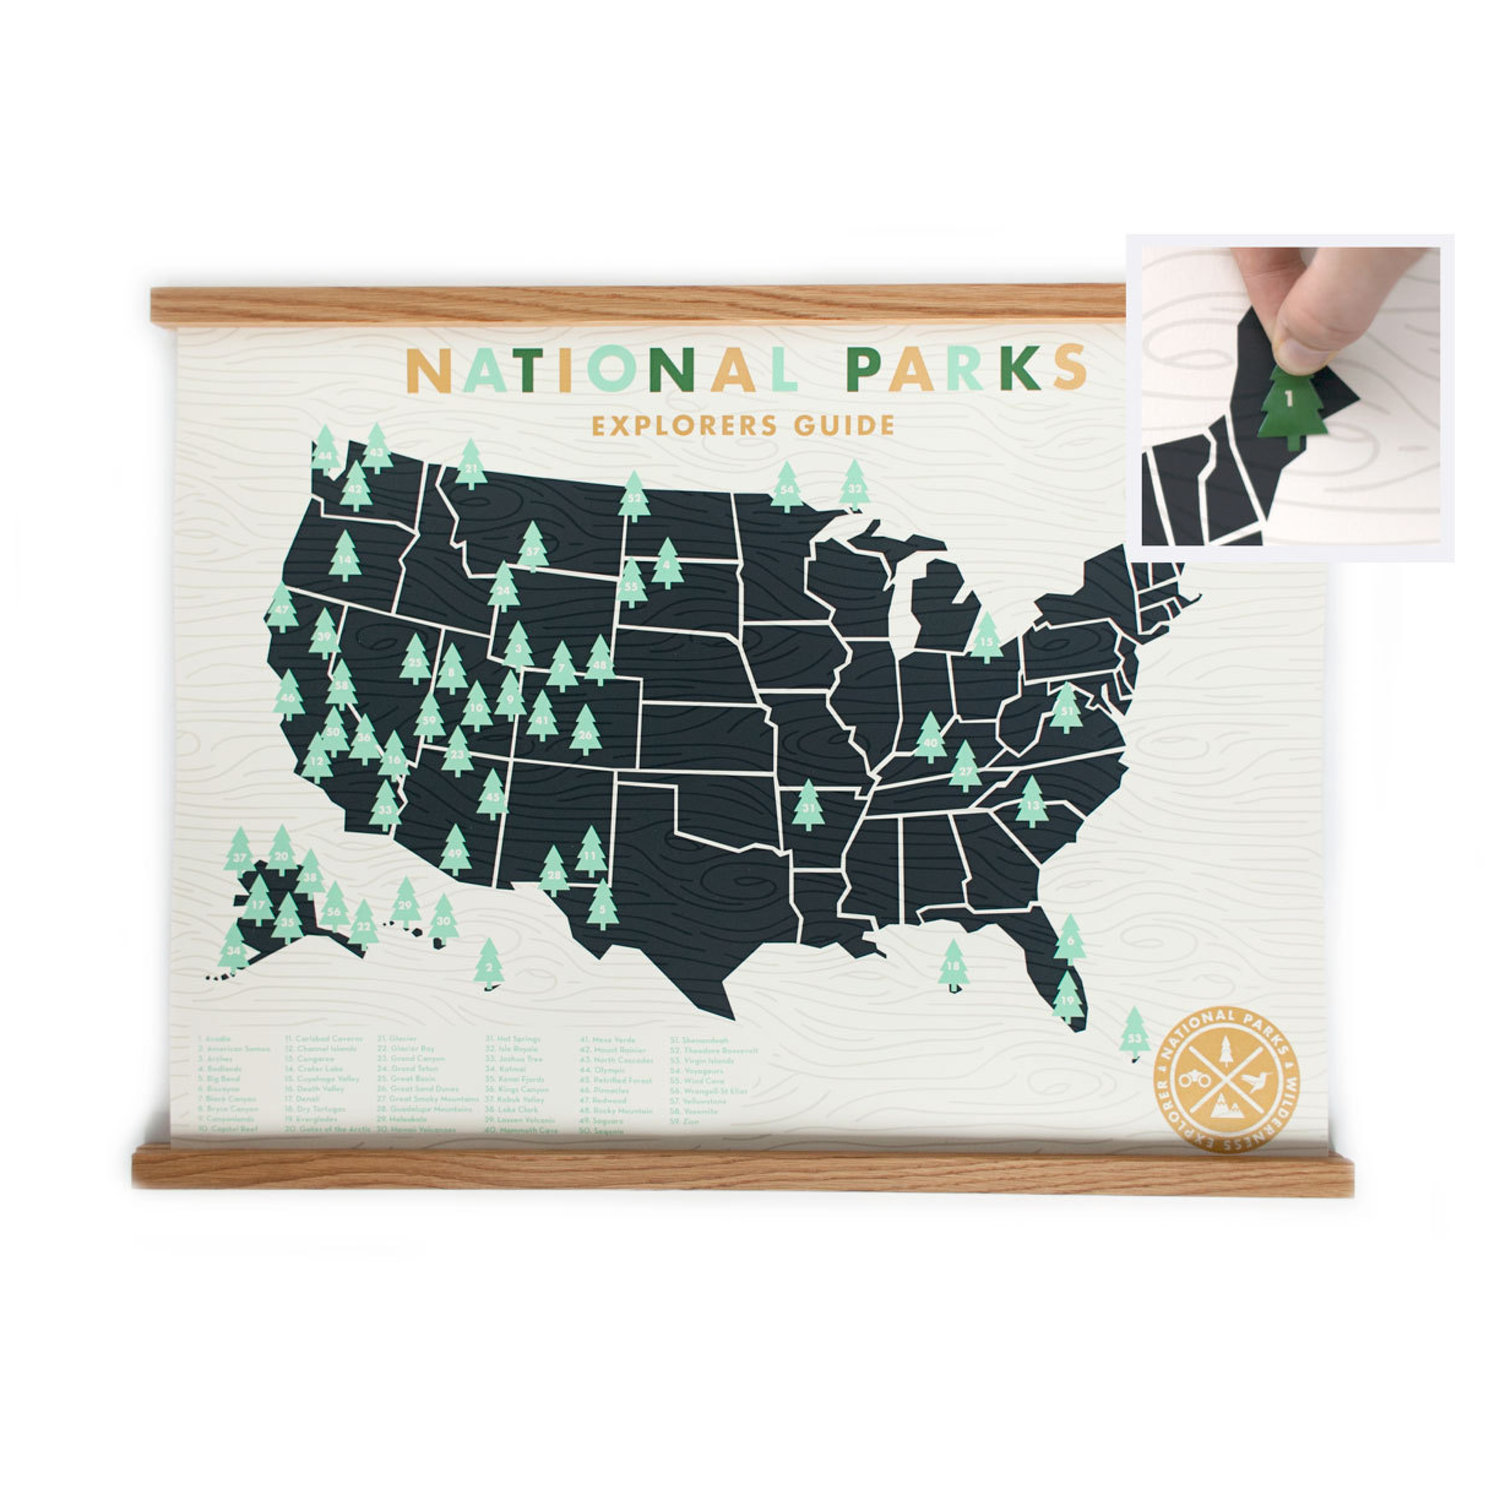 National Parks Map 18x24 - Official Explorers Guide Screen Print ...